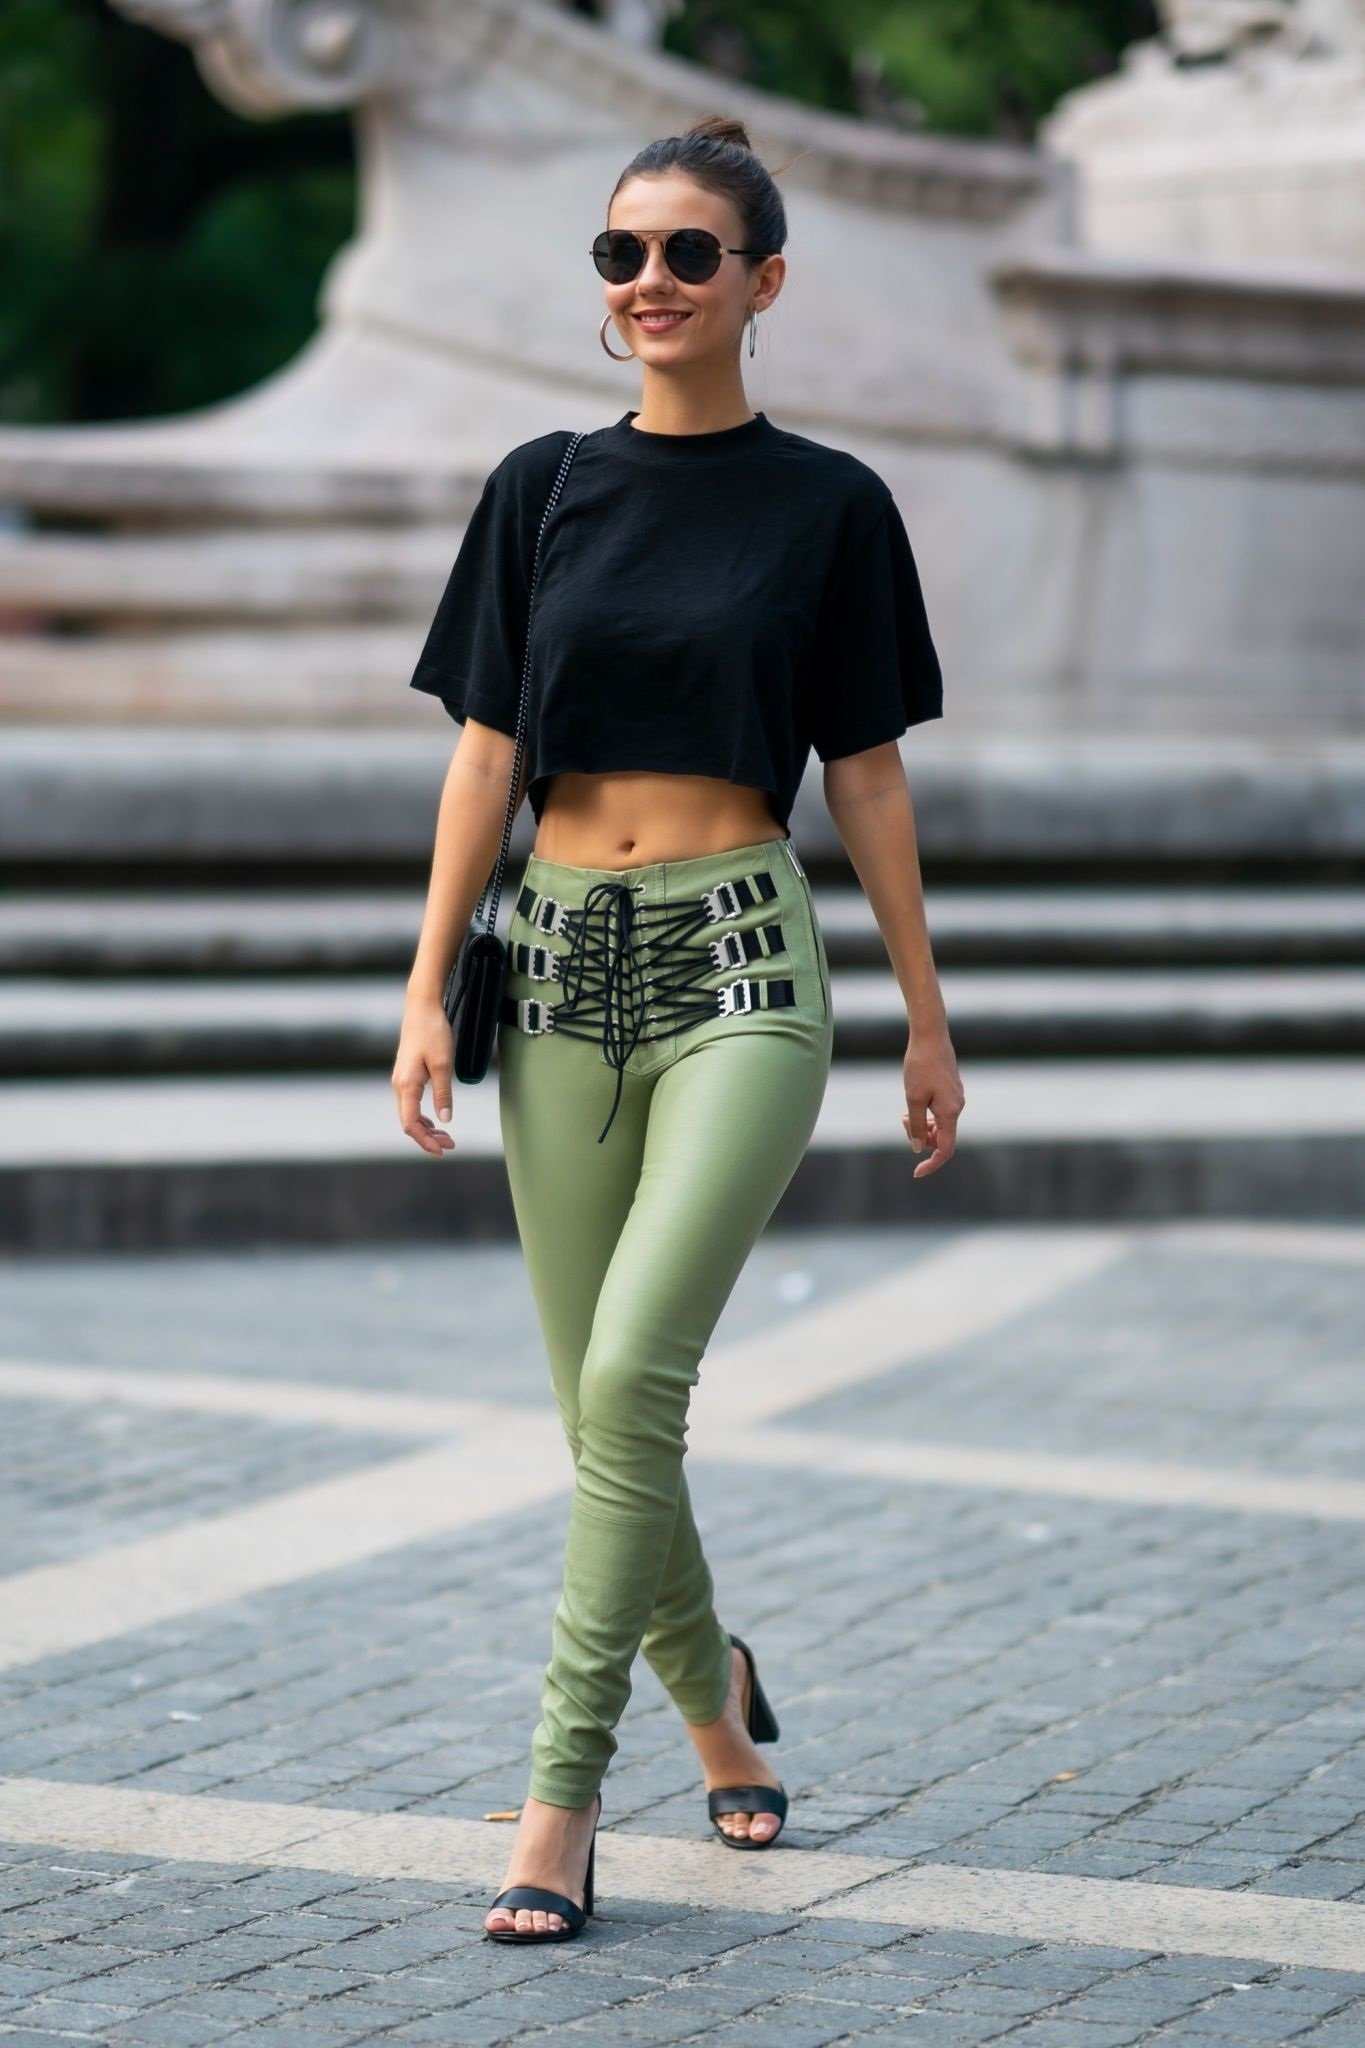 Victoria Justice Shows Her Navel While Walking In Street Of NYC Set 2